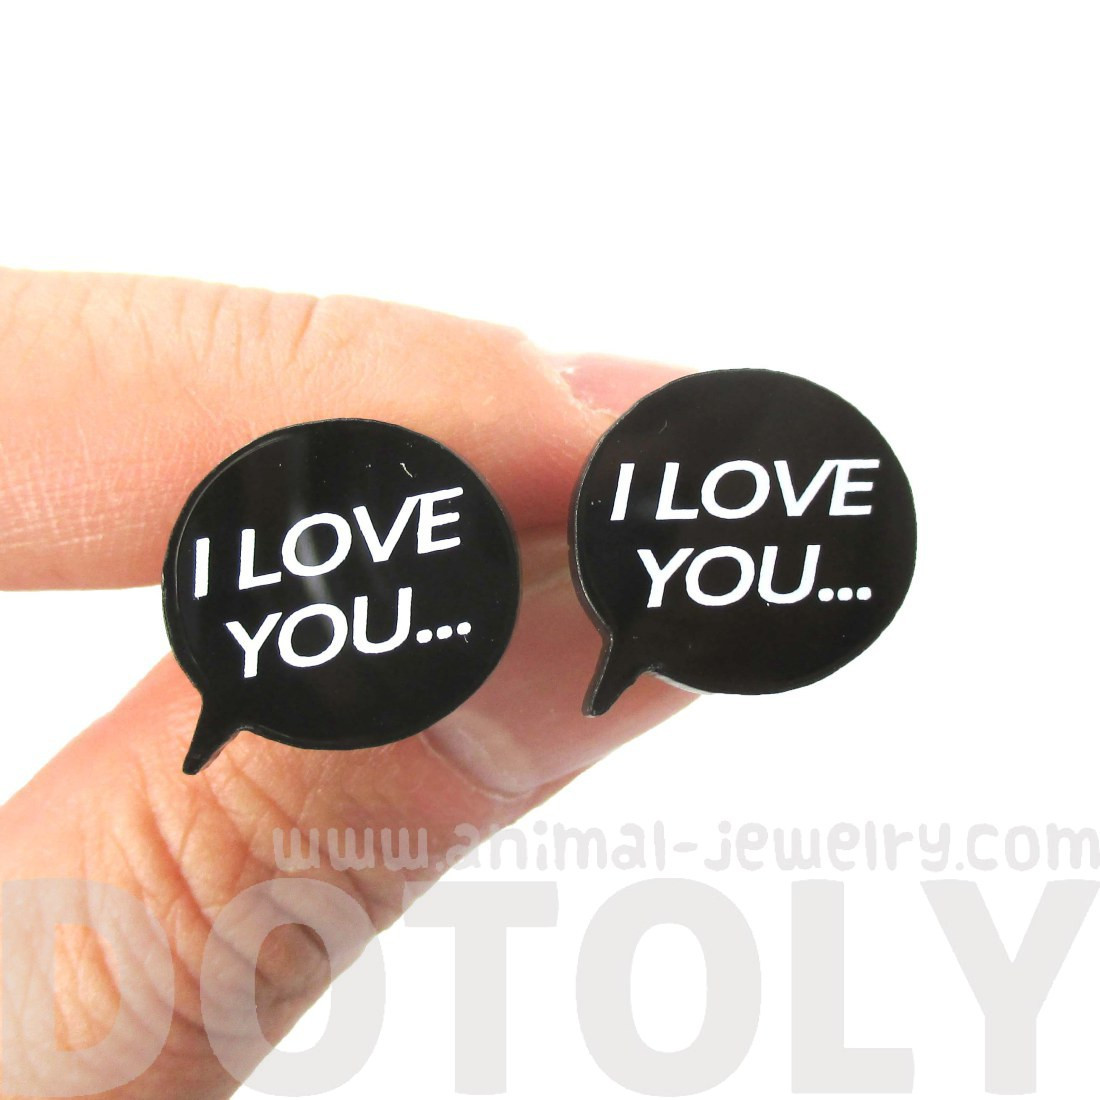 i love you speech bubble shaped laser cut stud earrings in black thumbnail 1